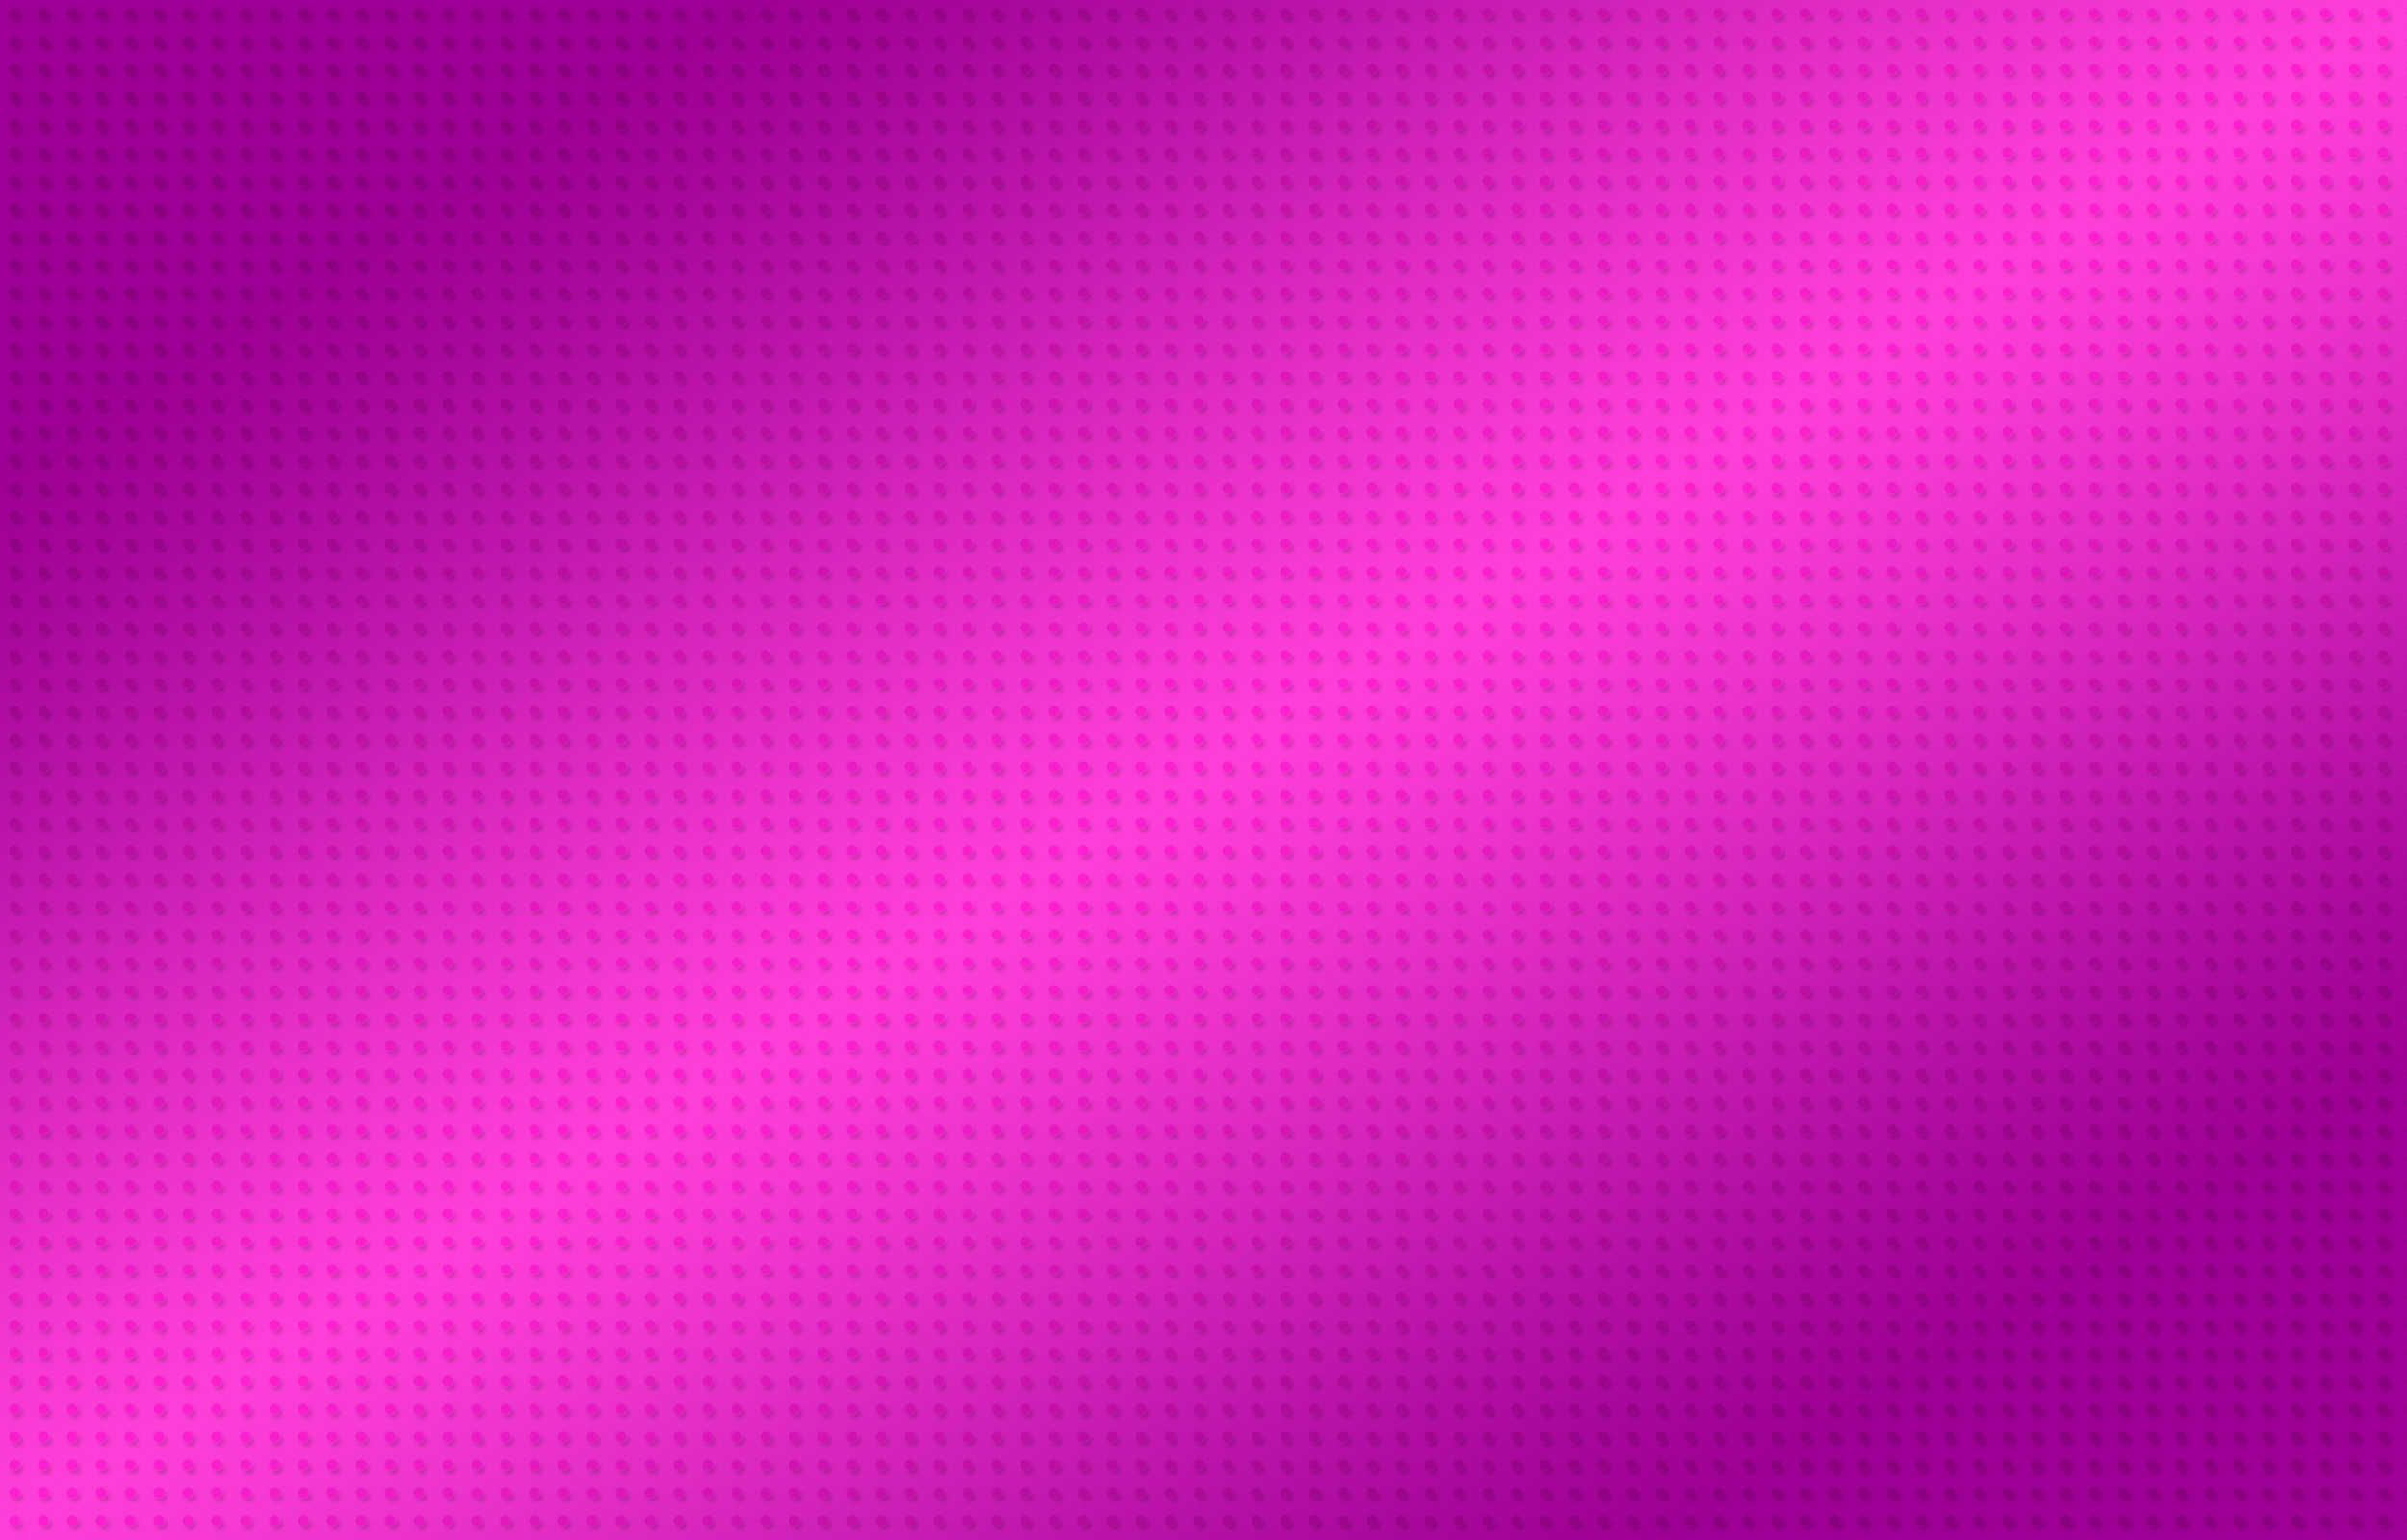 3 pink hd wallpapers backgrounds wallpaper abyss for Purple wallpaper for walls